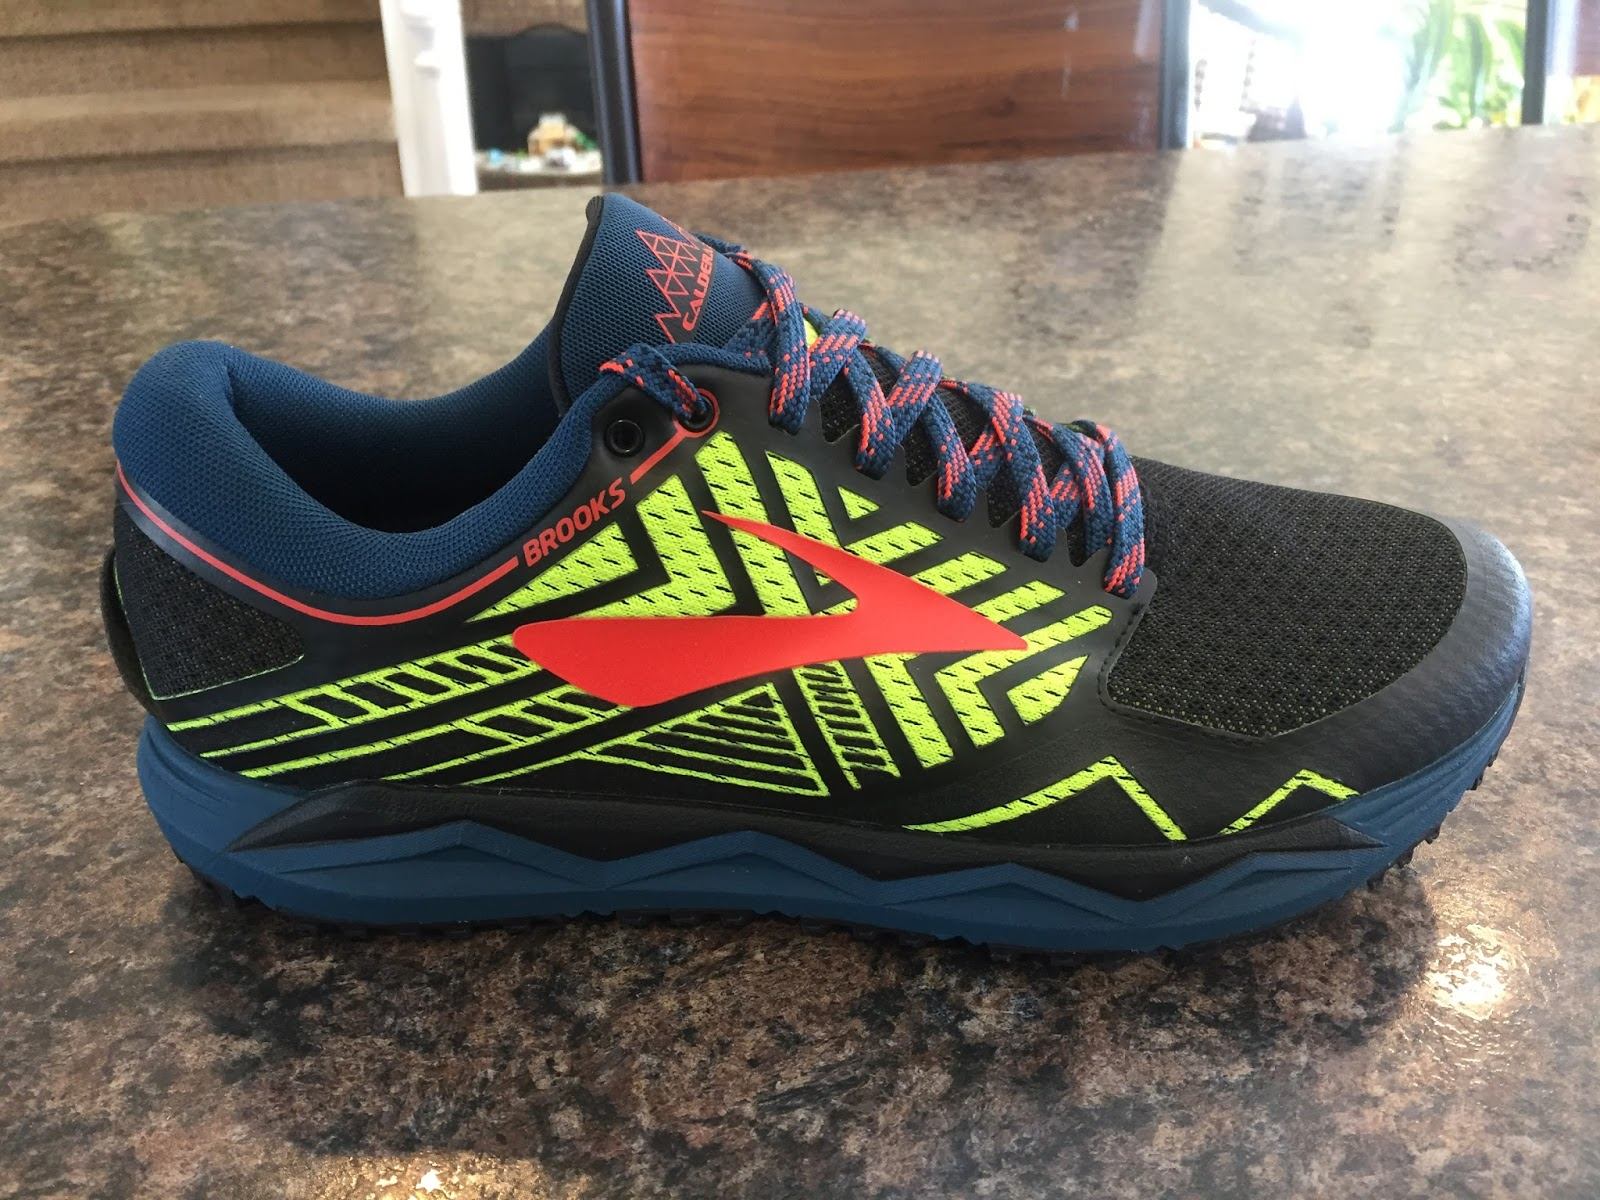 9c4bfabc1c78a Brooks Caldera 2 Review - All of the Goodness of the Original Caldera with  an Improved Upper